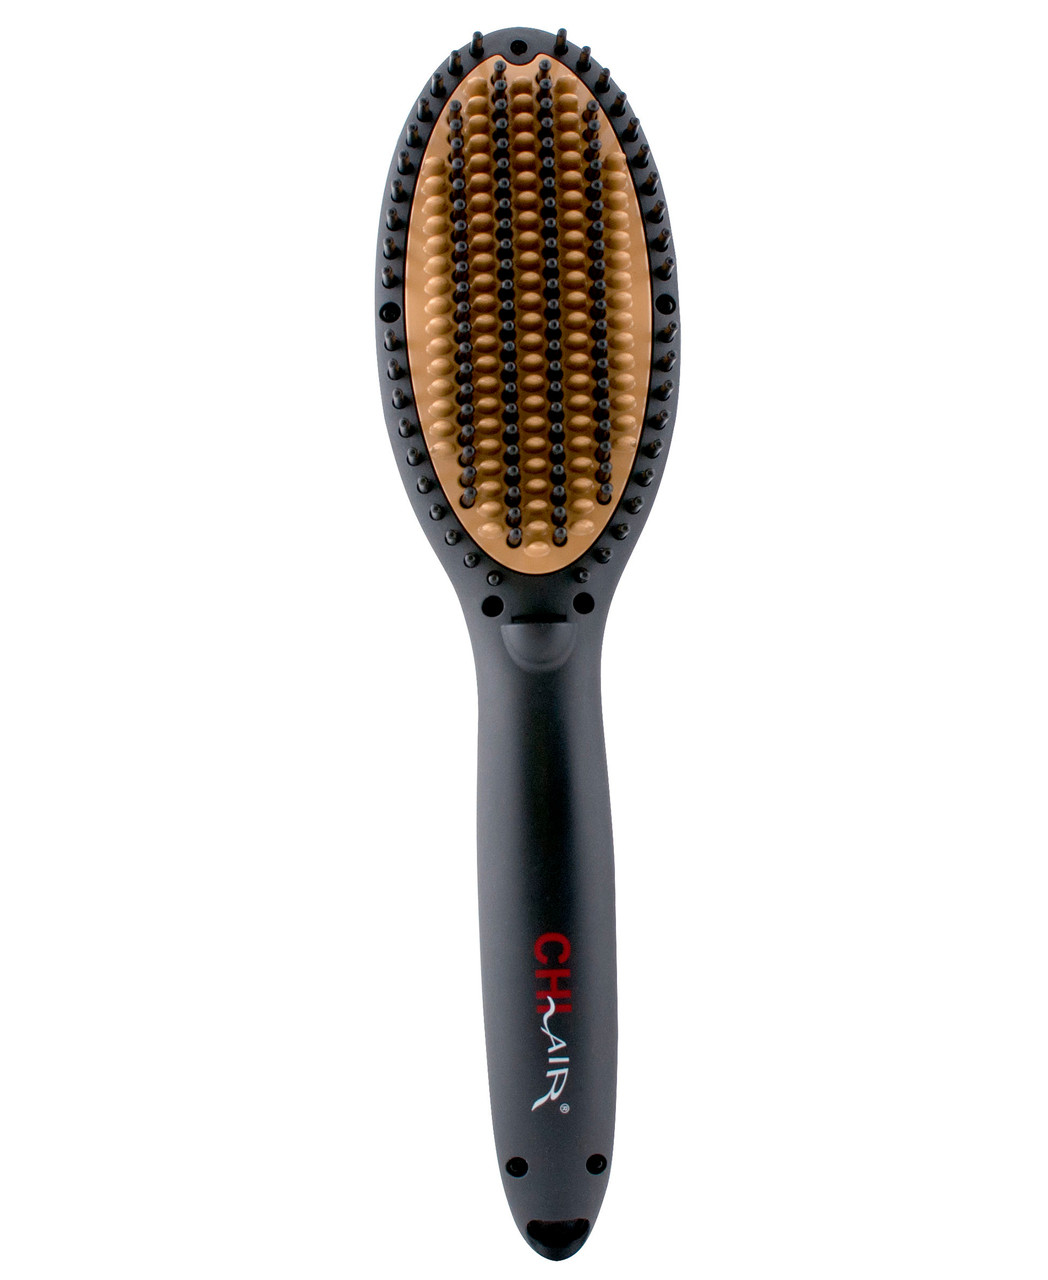 Chi air sexy waver reviews